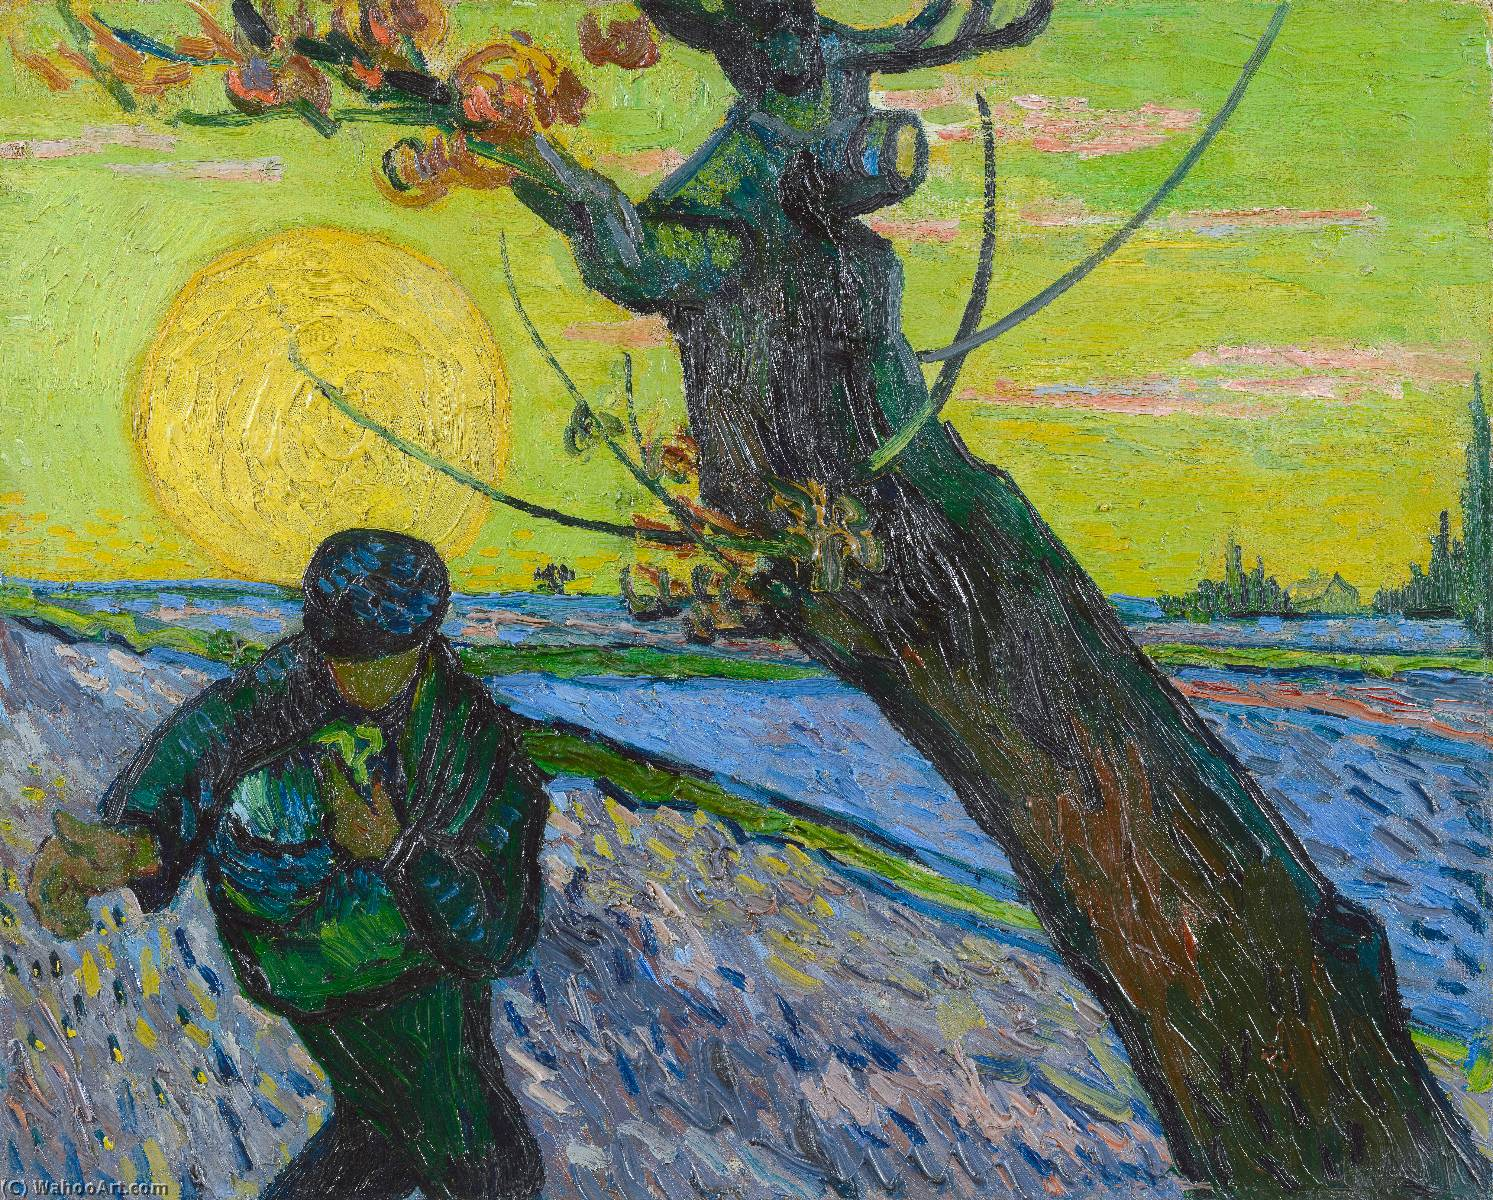 Vang Gogh Cuadros The Sower 1888 By Vincent Van Gogh 1853 1890 Netherlands Oil